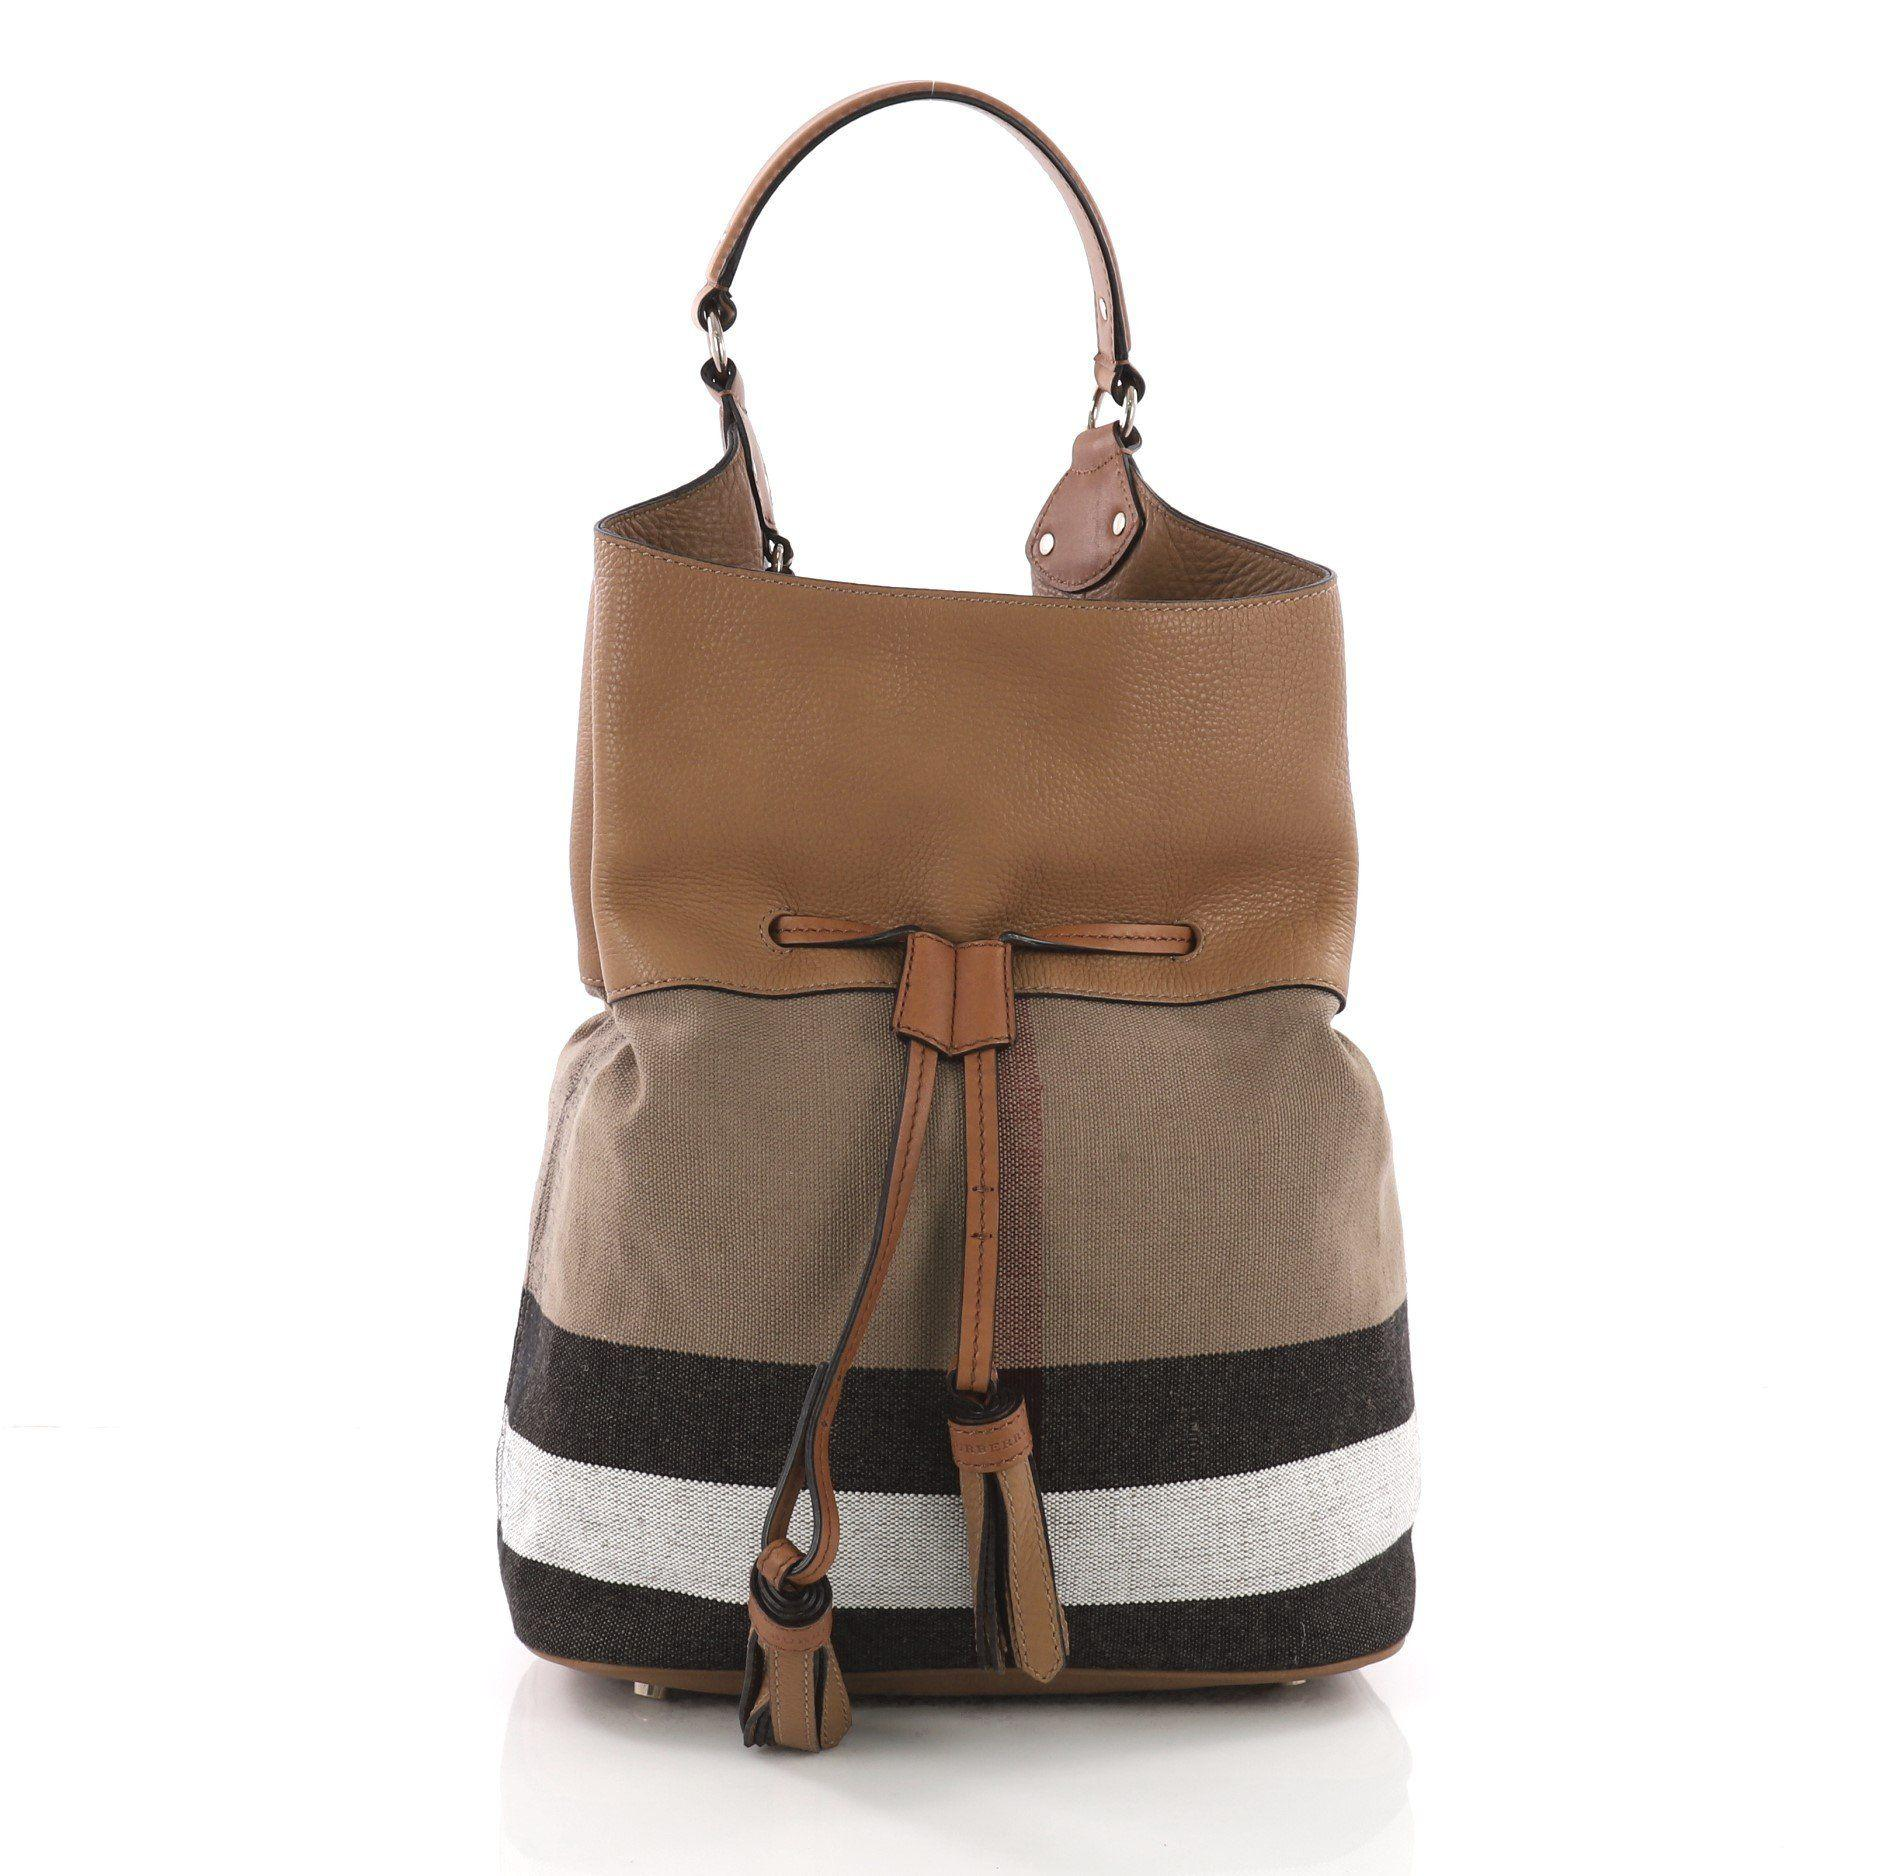 a17ec411aa38 Burberry. Women s Brown Pre Owned Ashby Drawstring Handbag House Check  Canvas ...